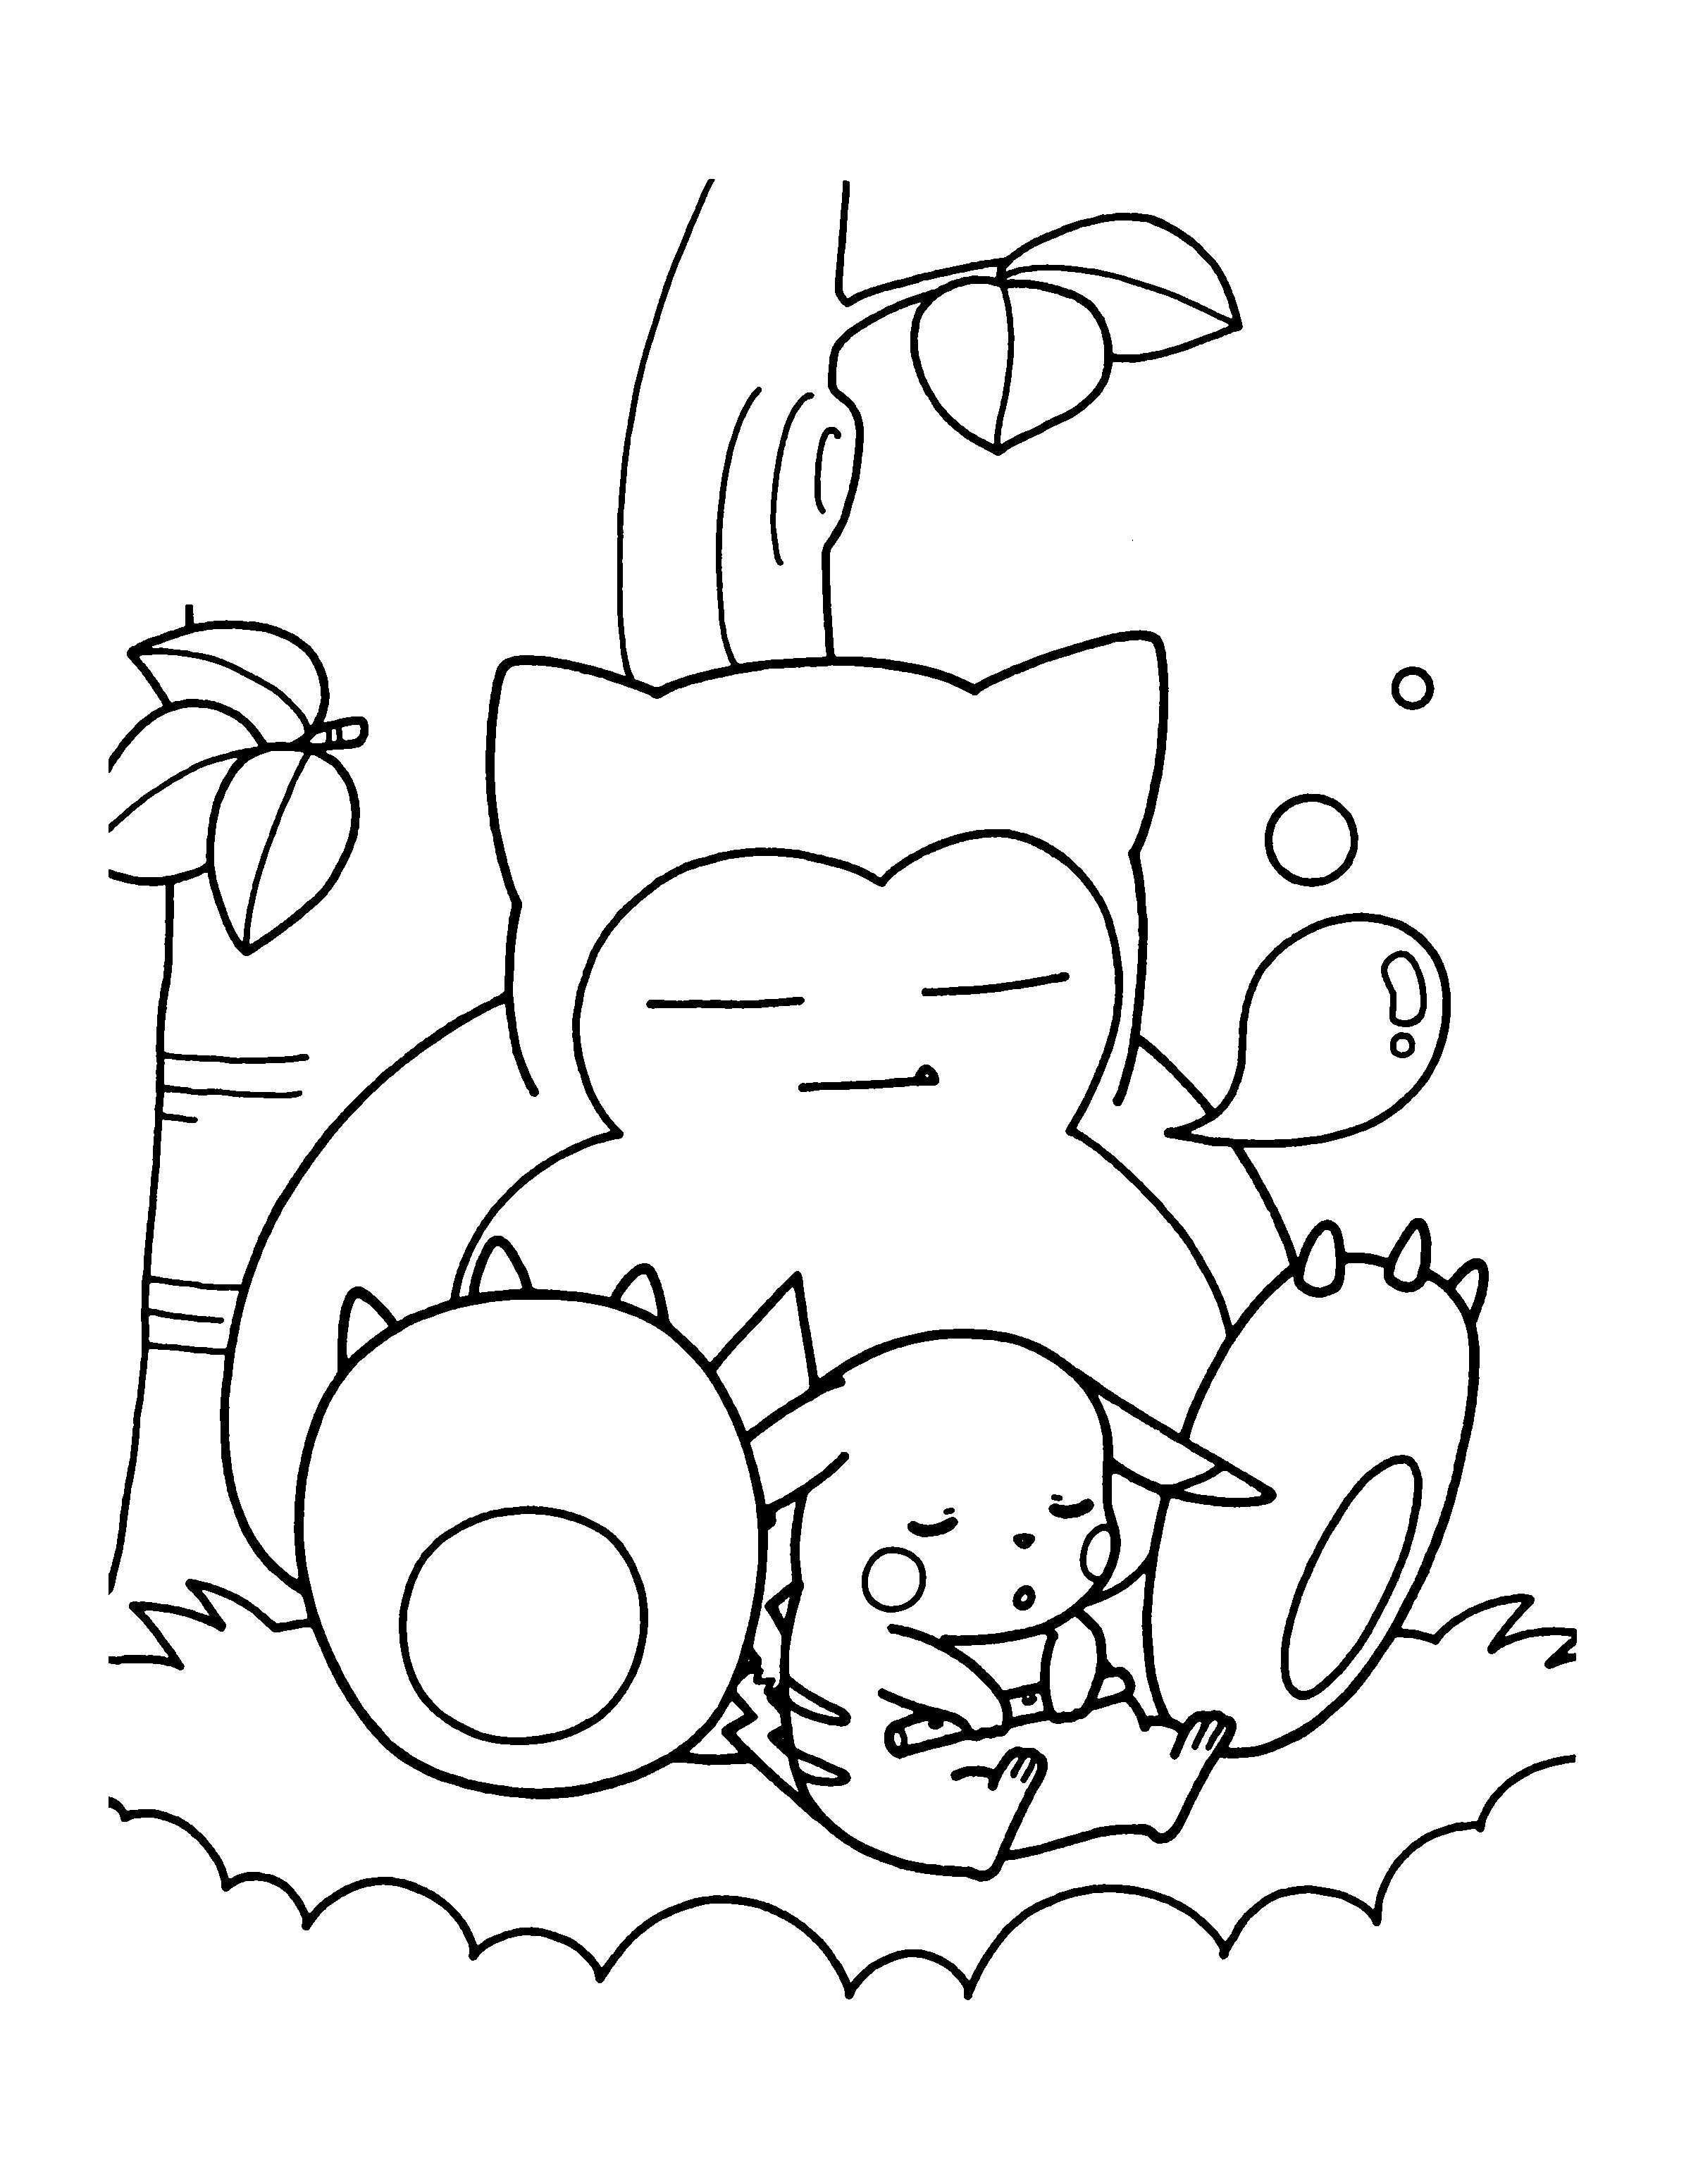 Pokemon Coloring Pages Snorlax From The Thousands Of Pictures On The Web With Regards To Pokemon Coloring Sheets Pokemon Coloring Pages Pikachu Coloring Page